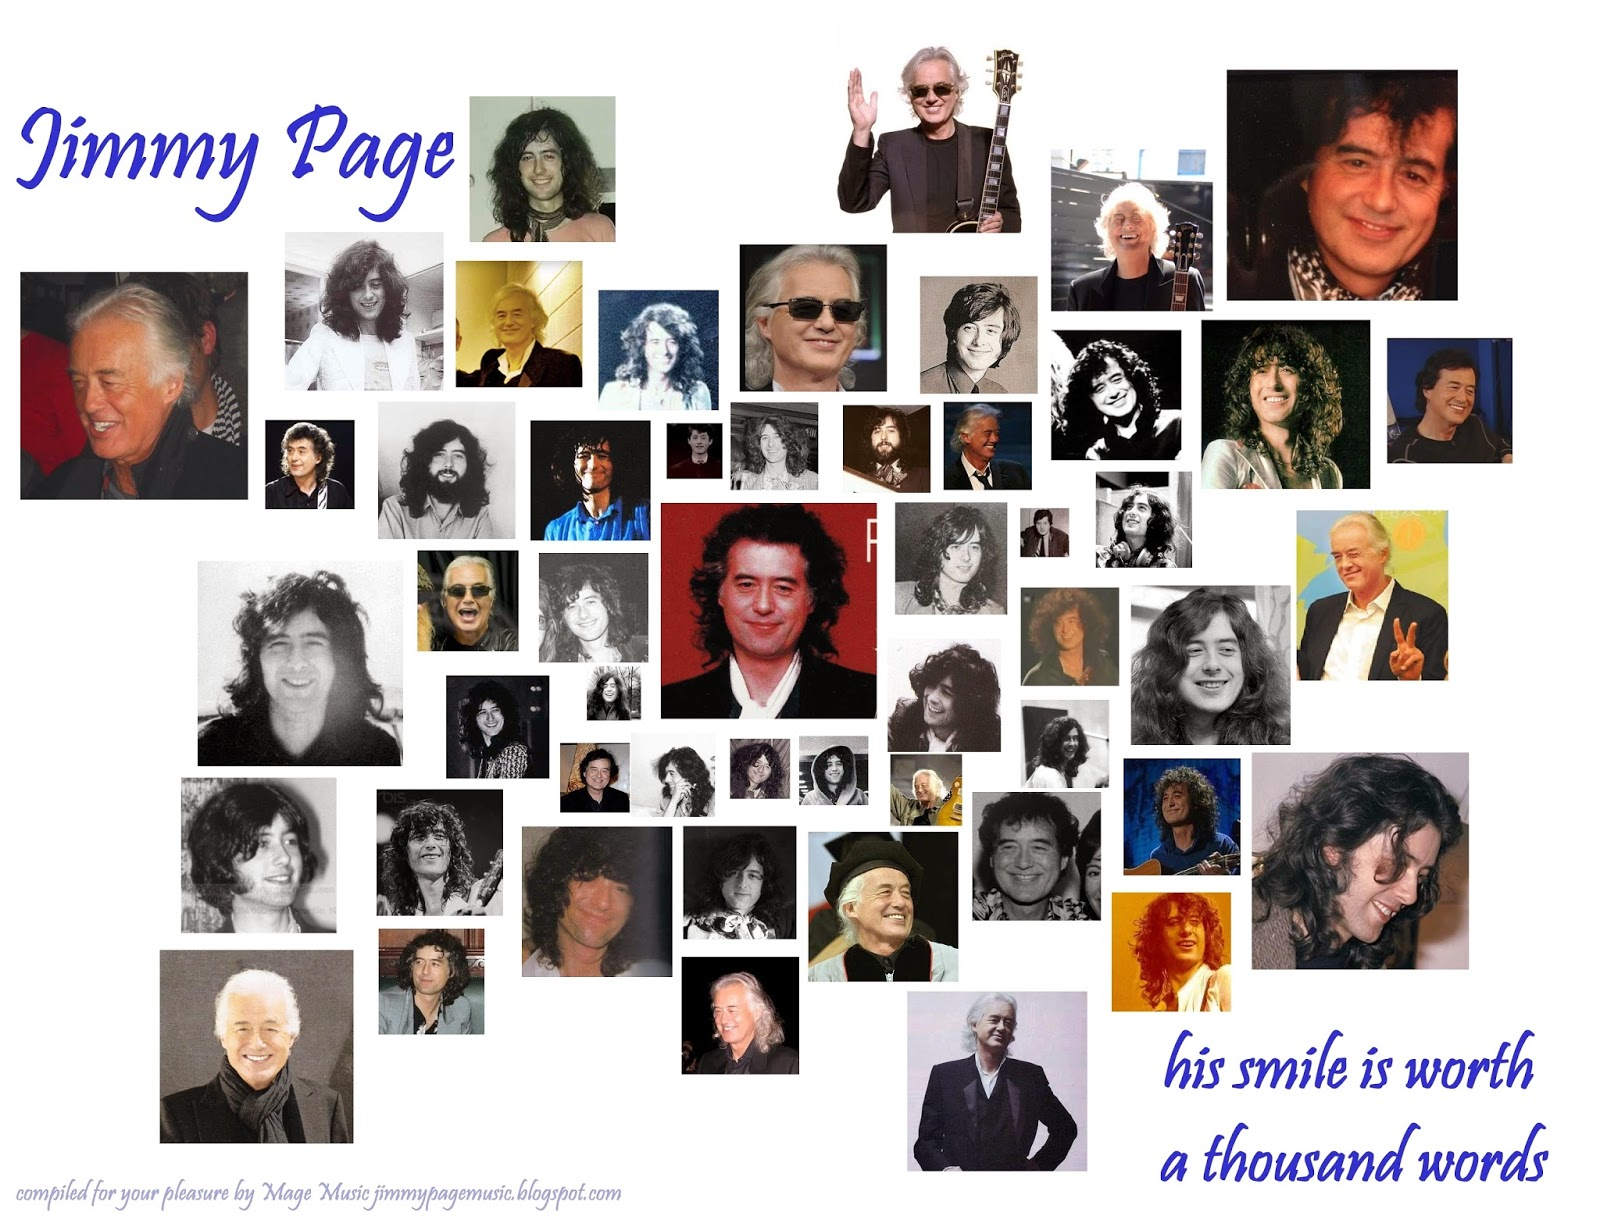 Mage Music - Jimmy Page Smiles - jimmypagemusic.blogspot.com